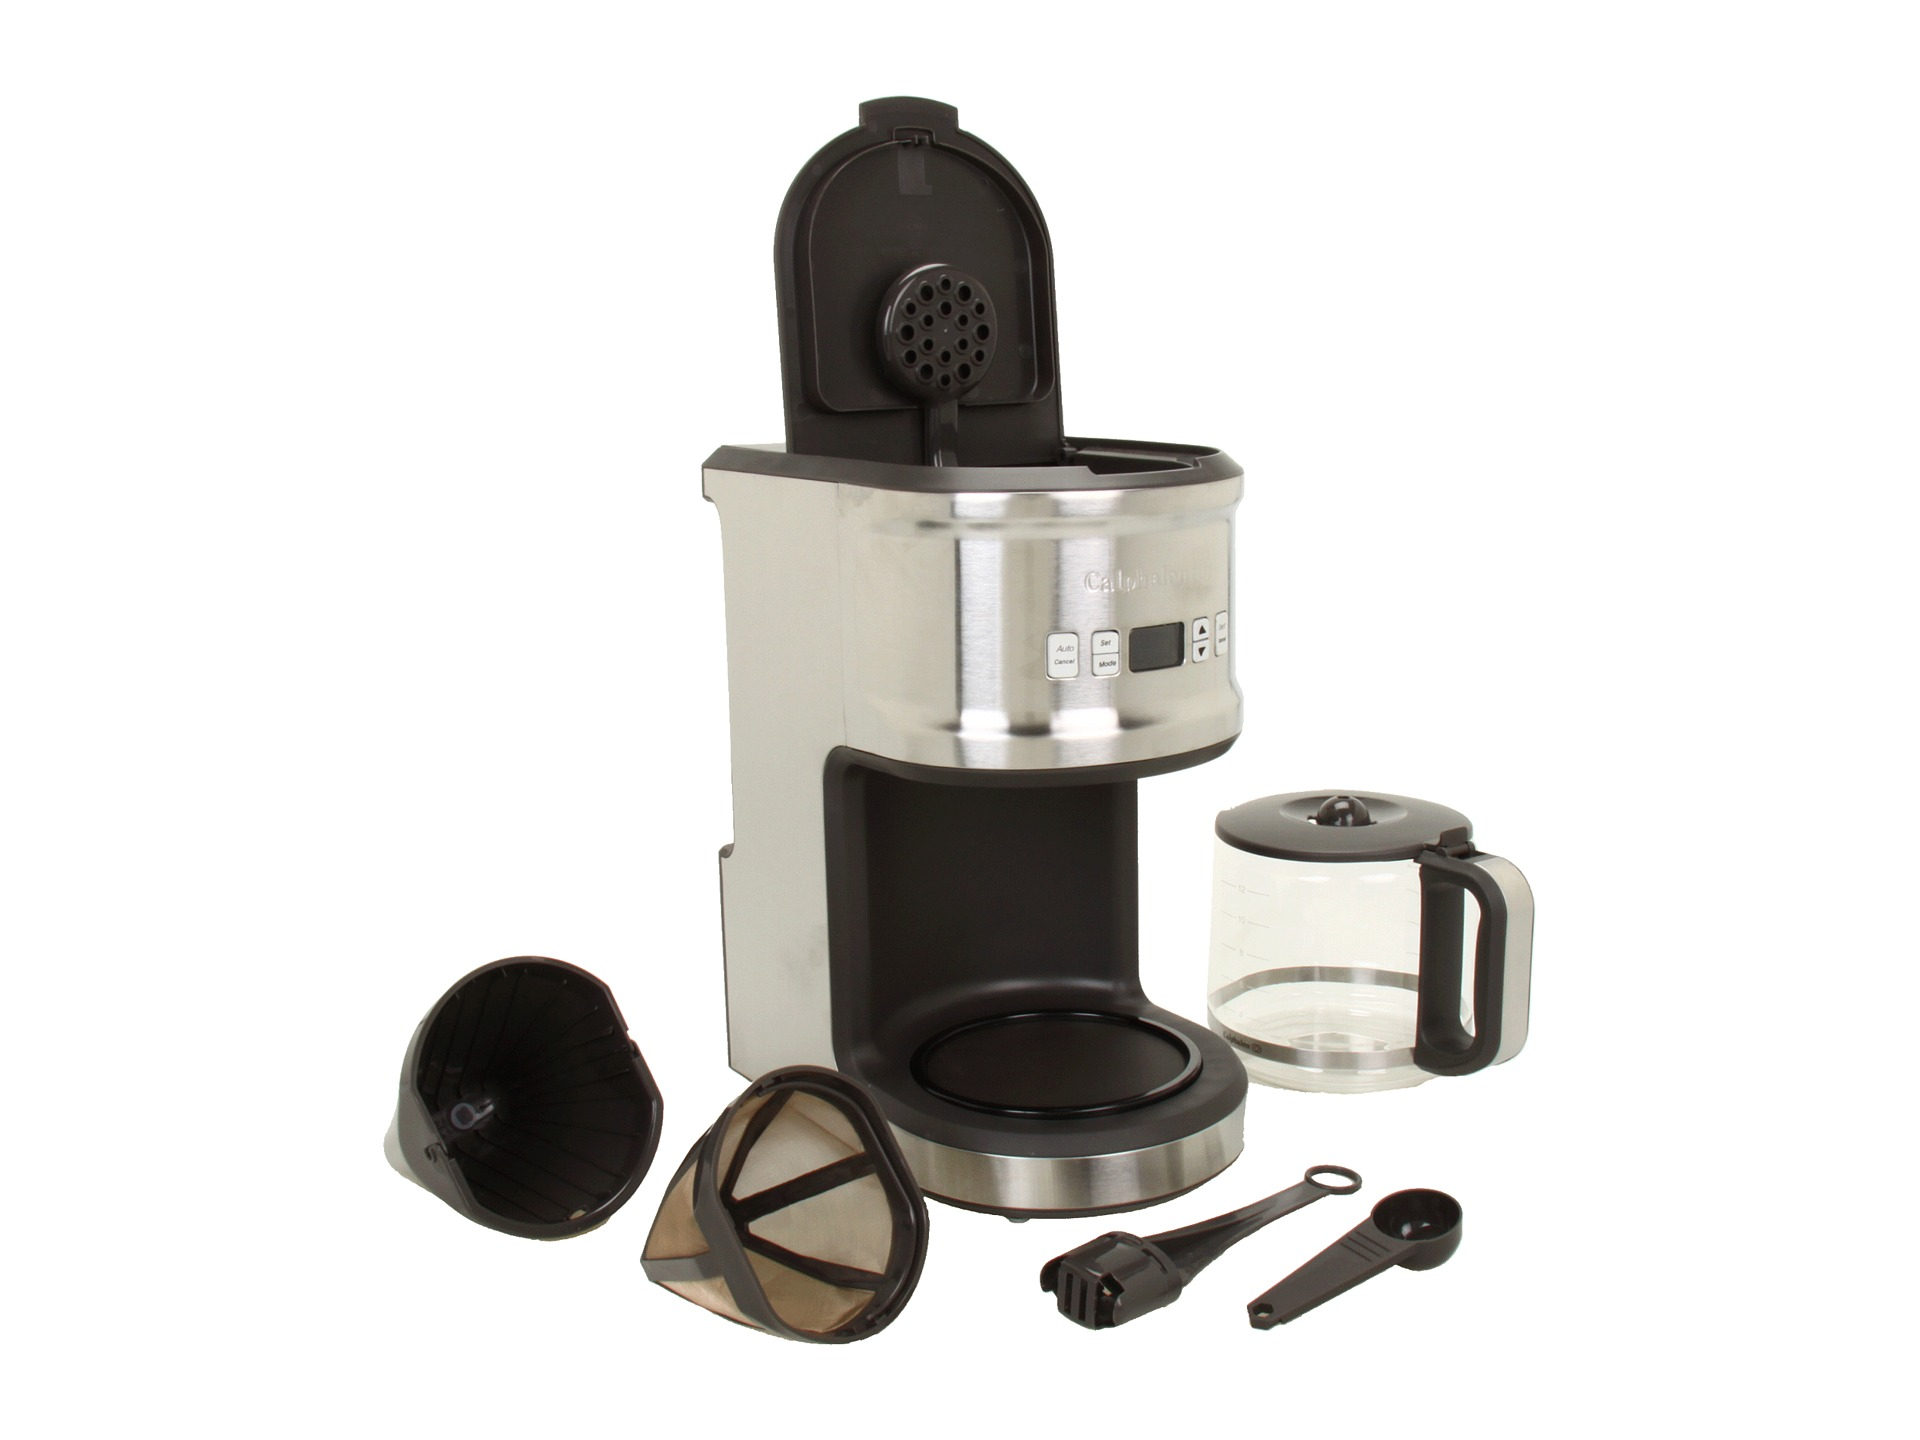 Calphalon Quick Brew Coffee Maker : Calphalon 1838803 Quick Brew 12 Cup Coffee Maker Shipped Free at Zappos